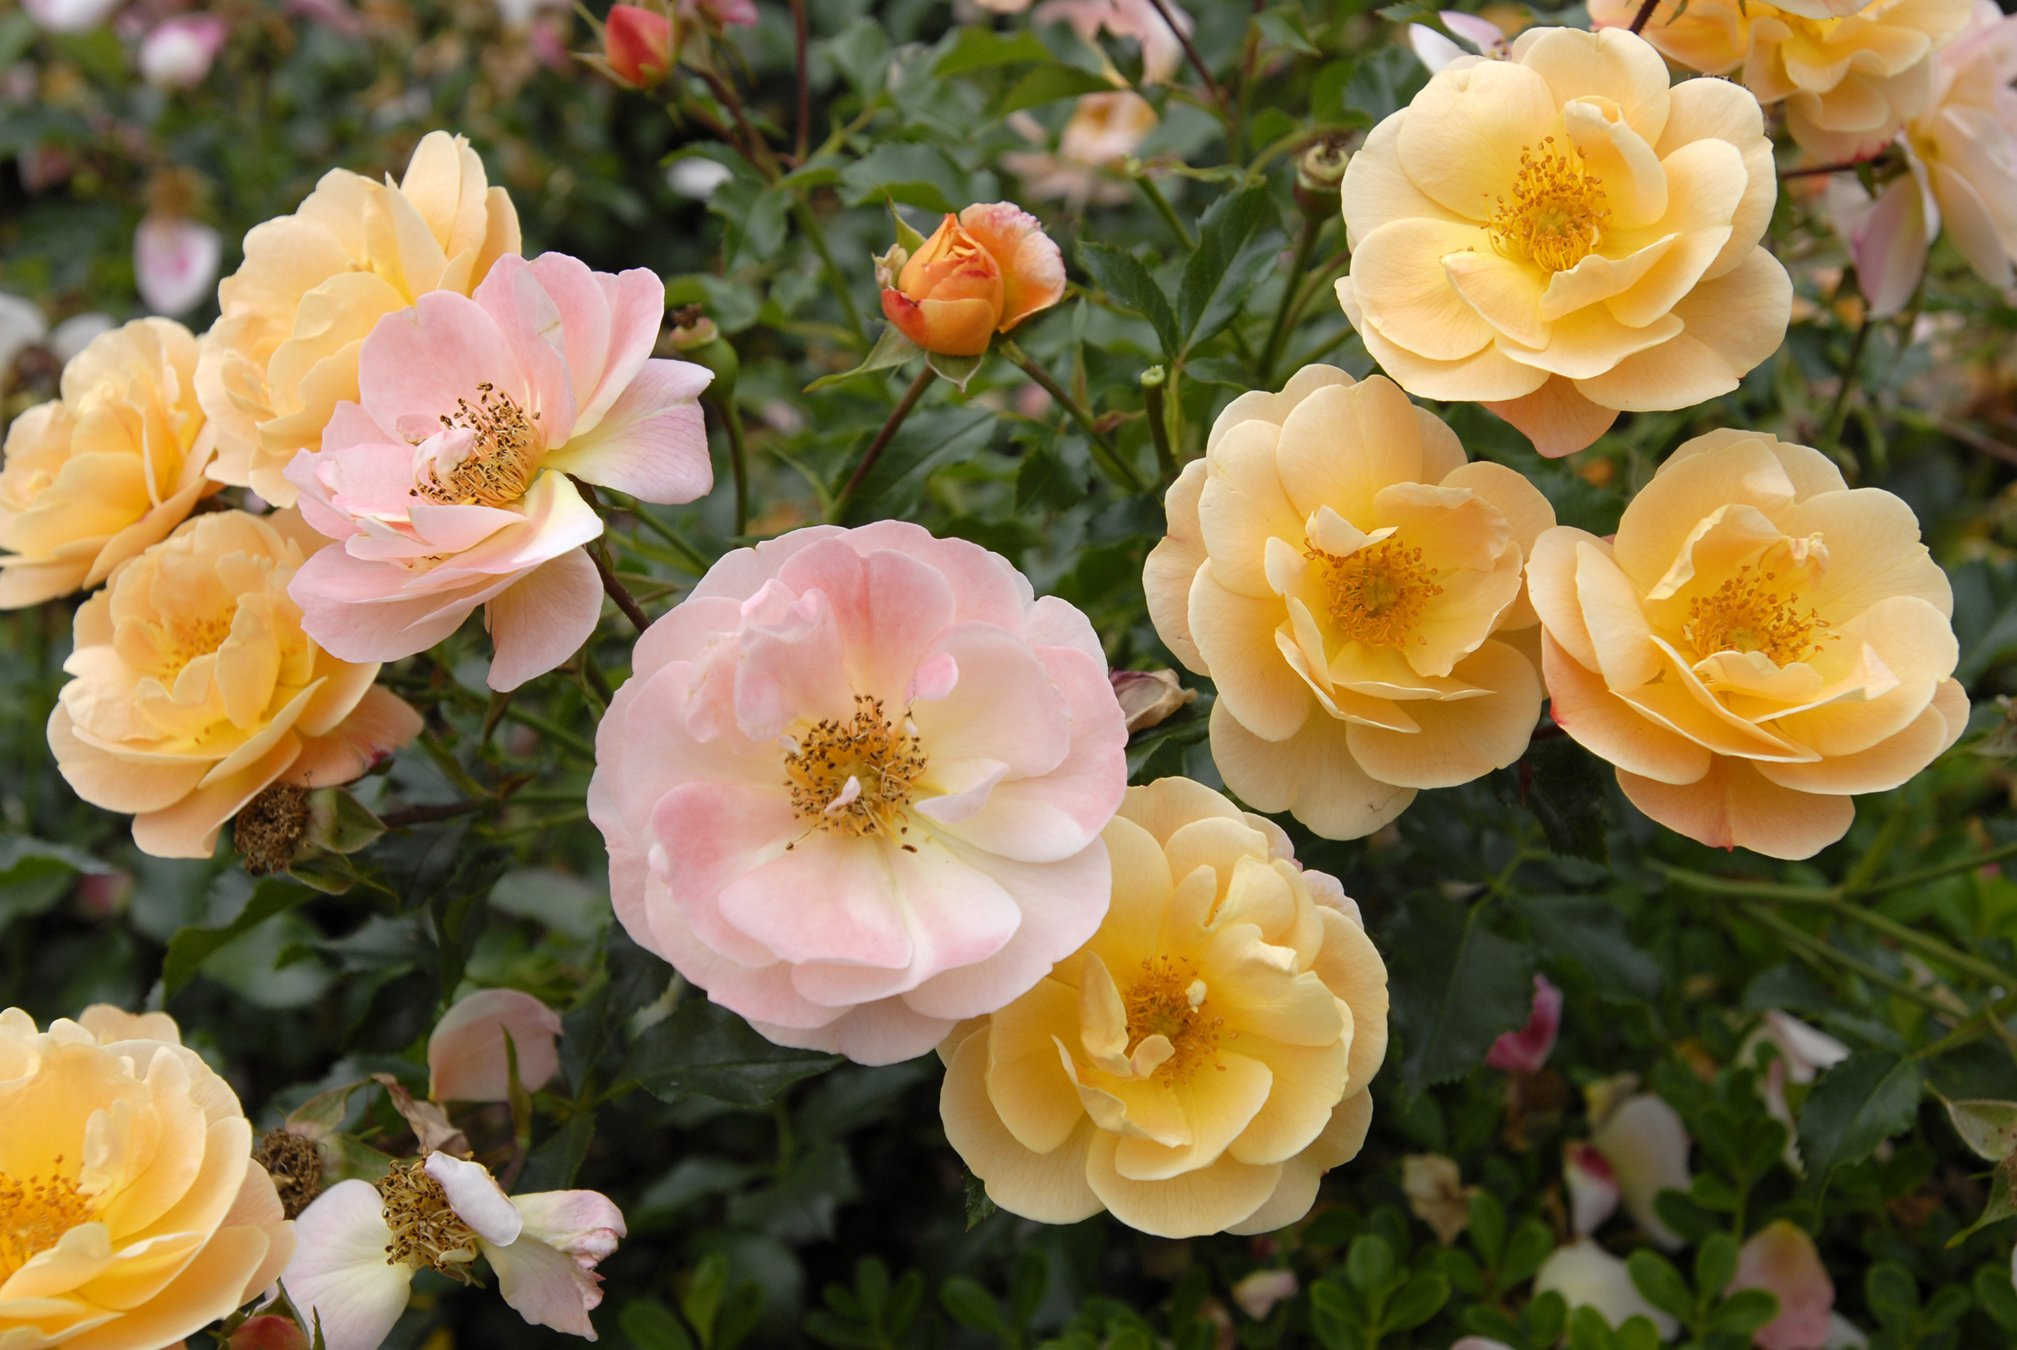 Rosa flower carpet amber sloat garden center amber flower carpet rose mightylinksfo Image collections